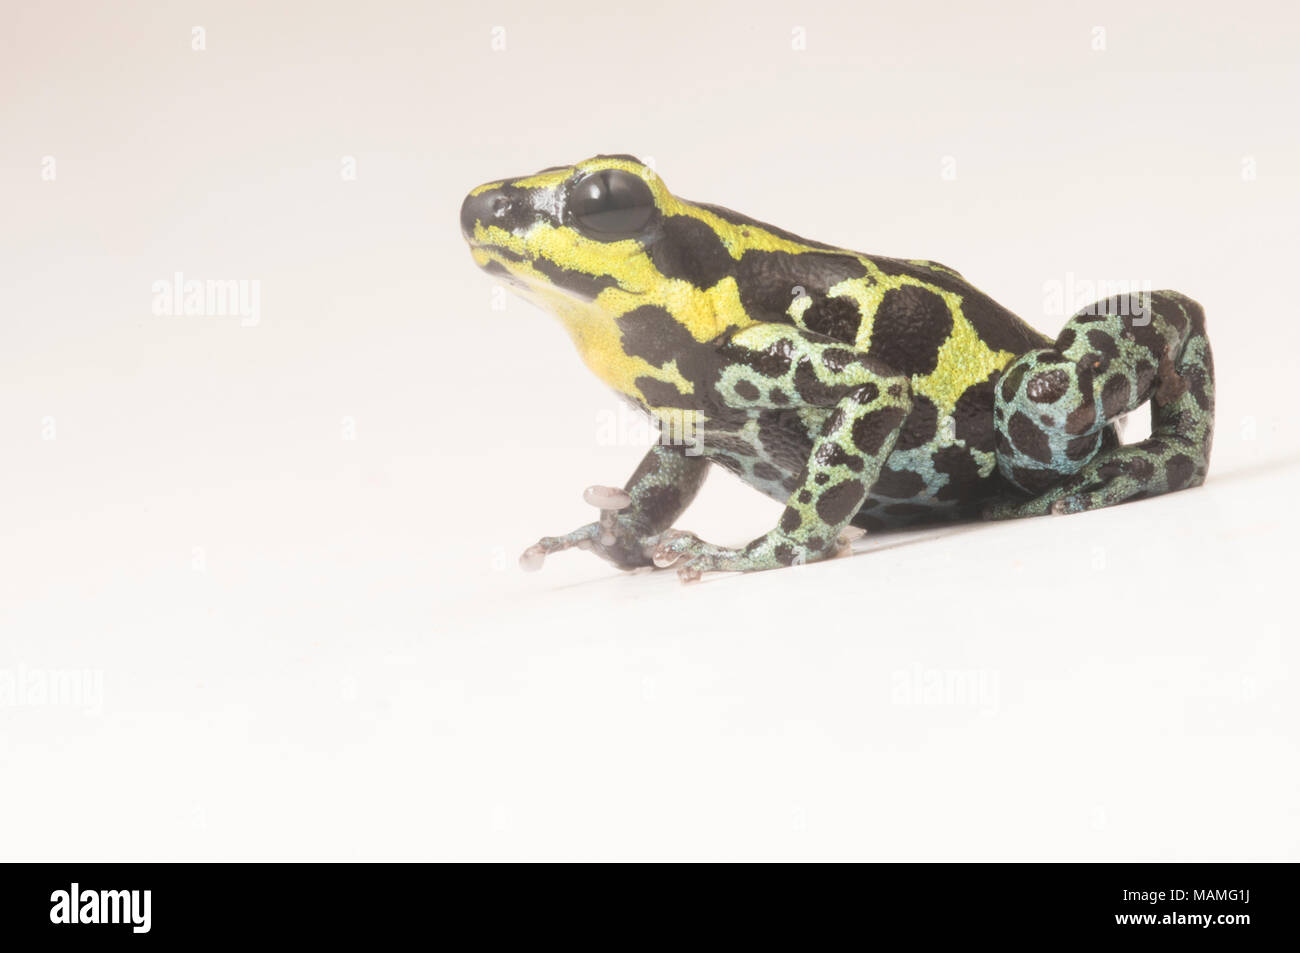 Frog Model Stock Photos & Frog Model Stock Images - Alamy